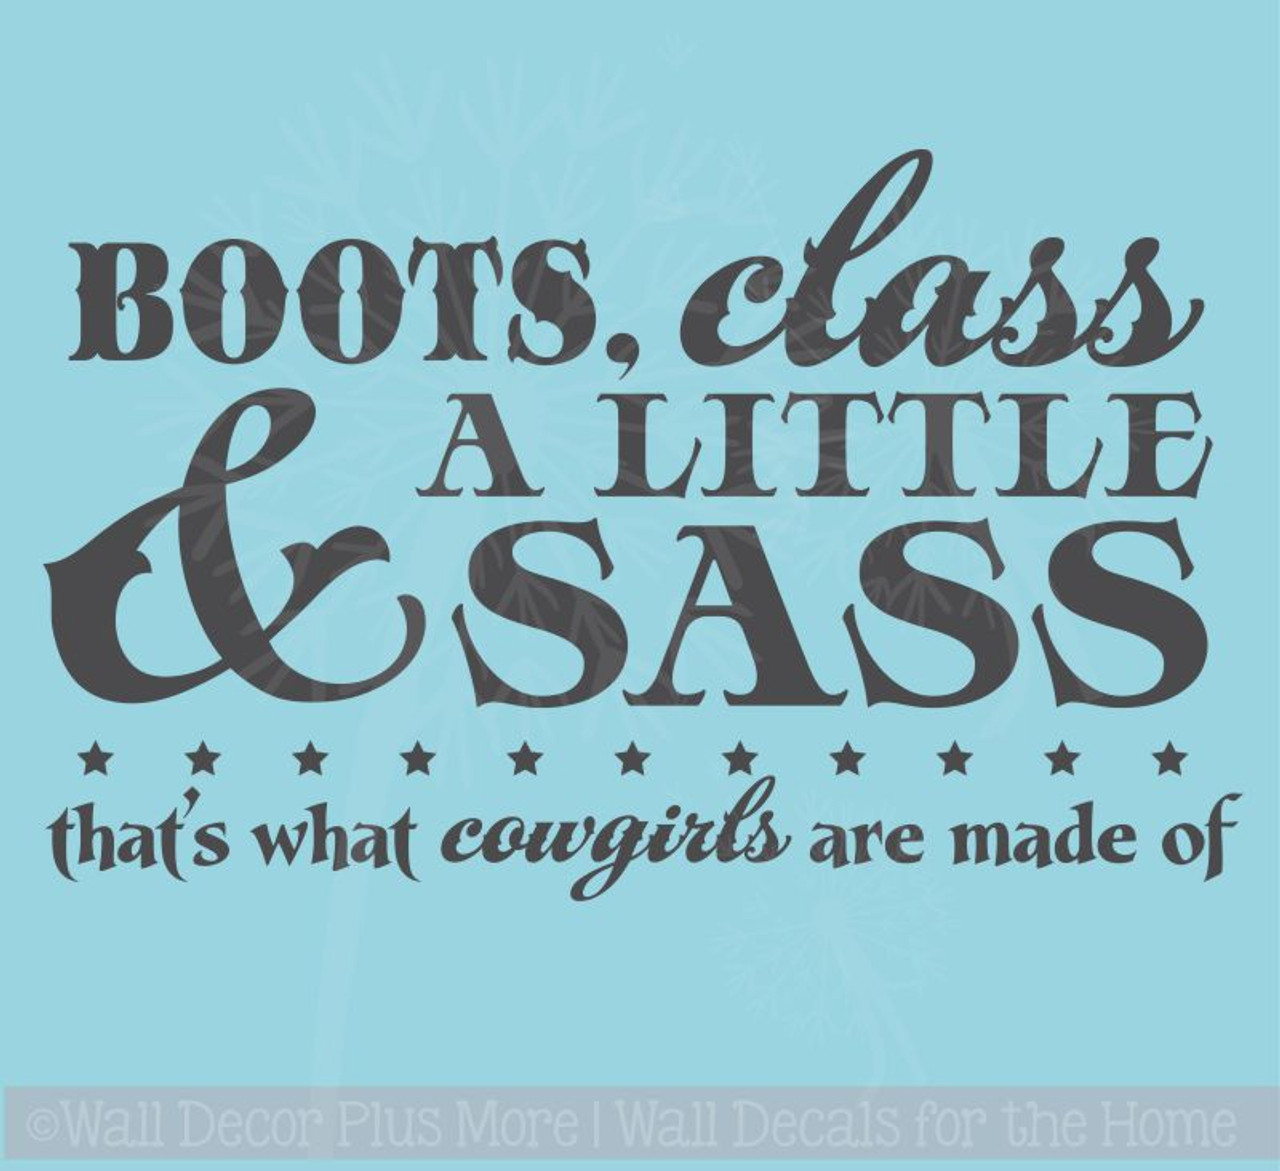 Big Girl Boots Quotes: Boots, Class, A Little Sass That's What Cowgirls Western